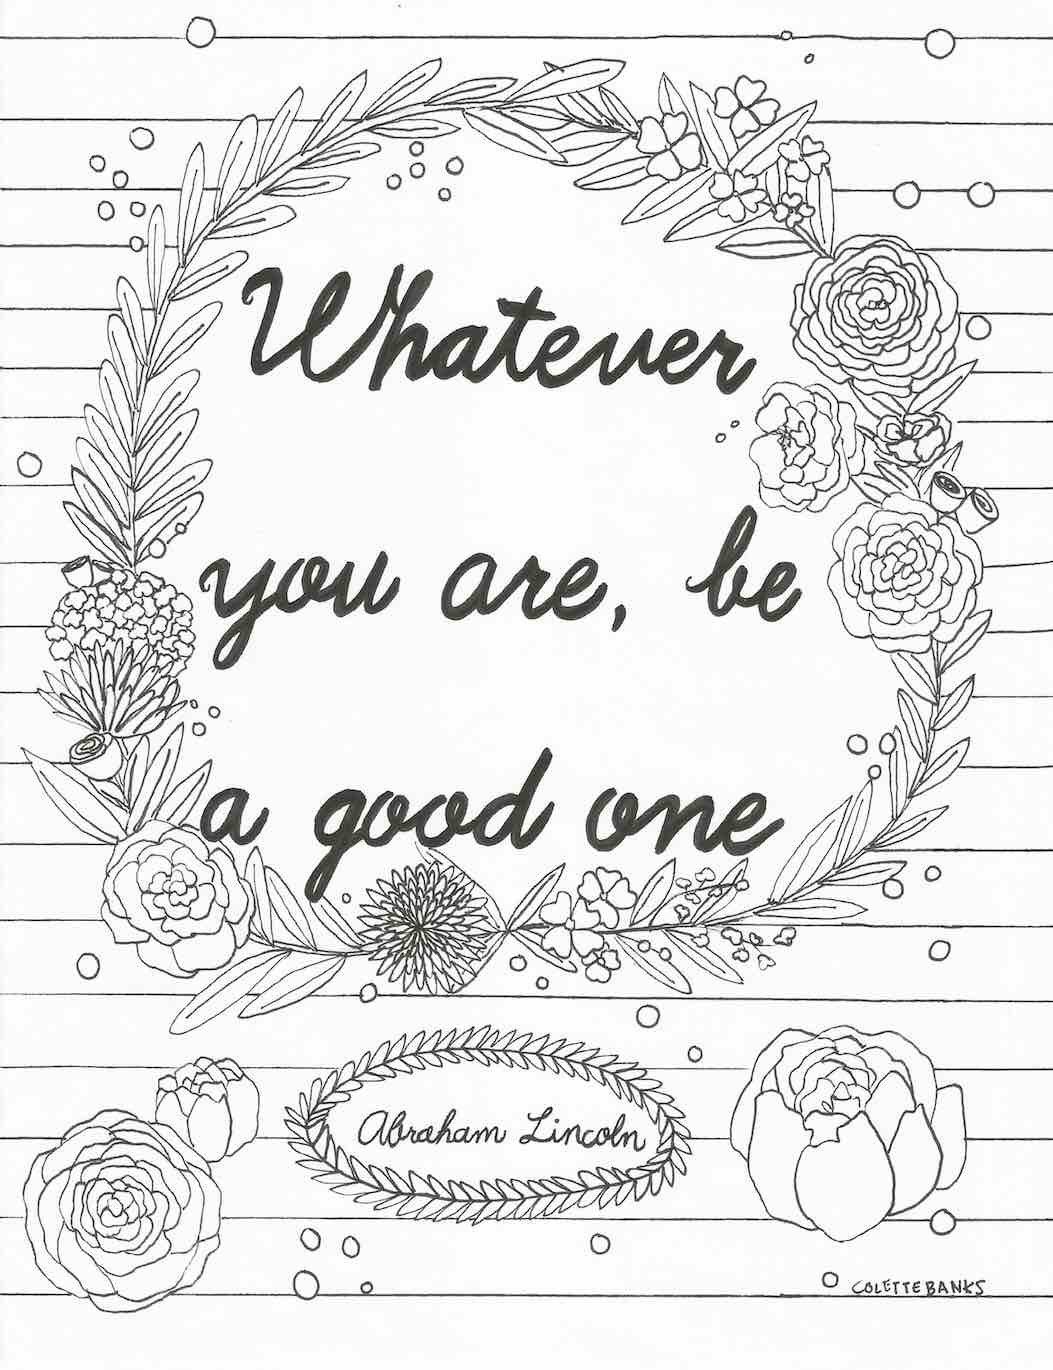 Quote Adult Printable Coloring Page Featuring A Quote From Abraham Lincoln And Includes A Floral